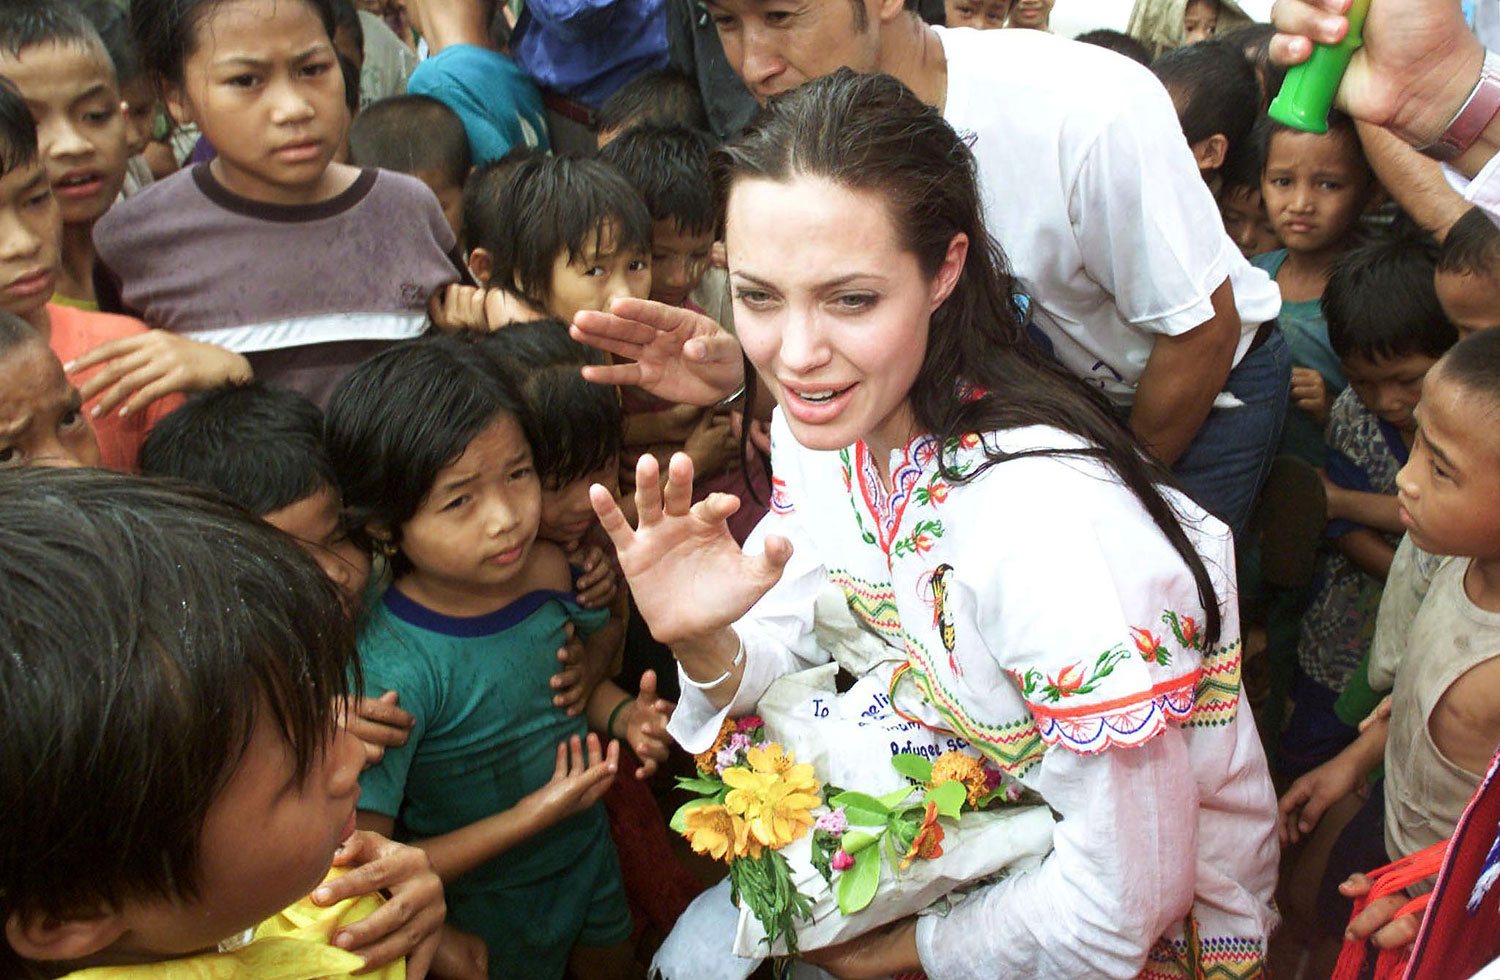 Angelina Jolie receives gifts from the children at the Tham Hin refugee camp on the Thai-Burma border May 19, 2002. Jolie visited the camp on as part of her role as goodwill ambassador for the United Nations High Commissioner for Refugees.